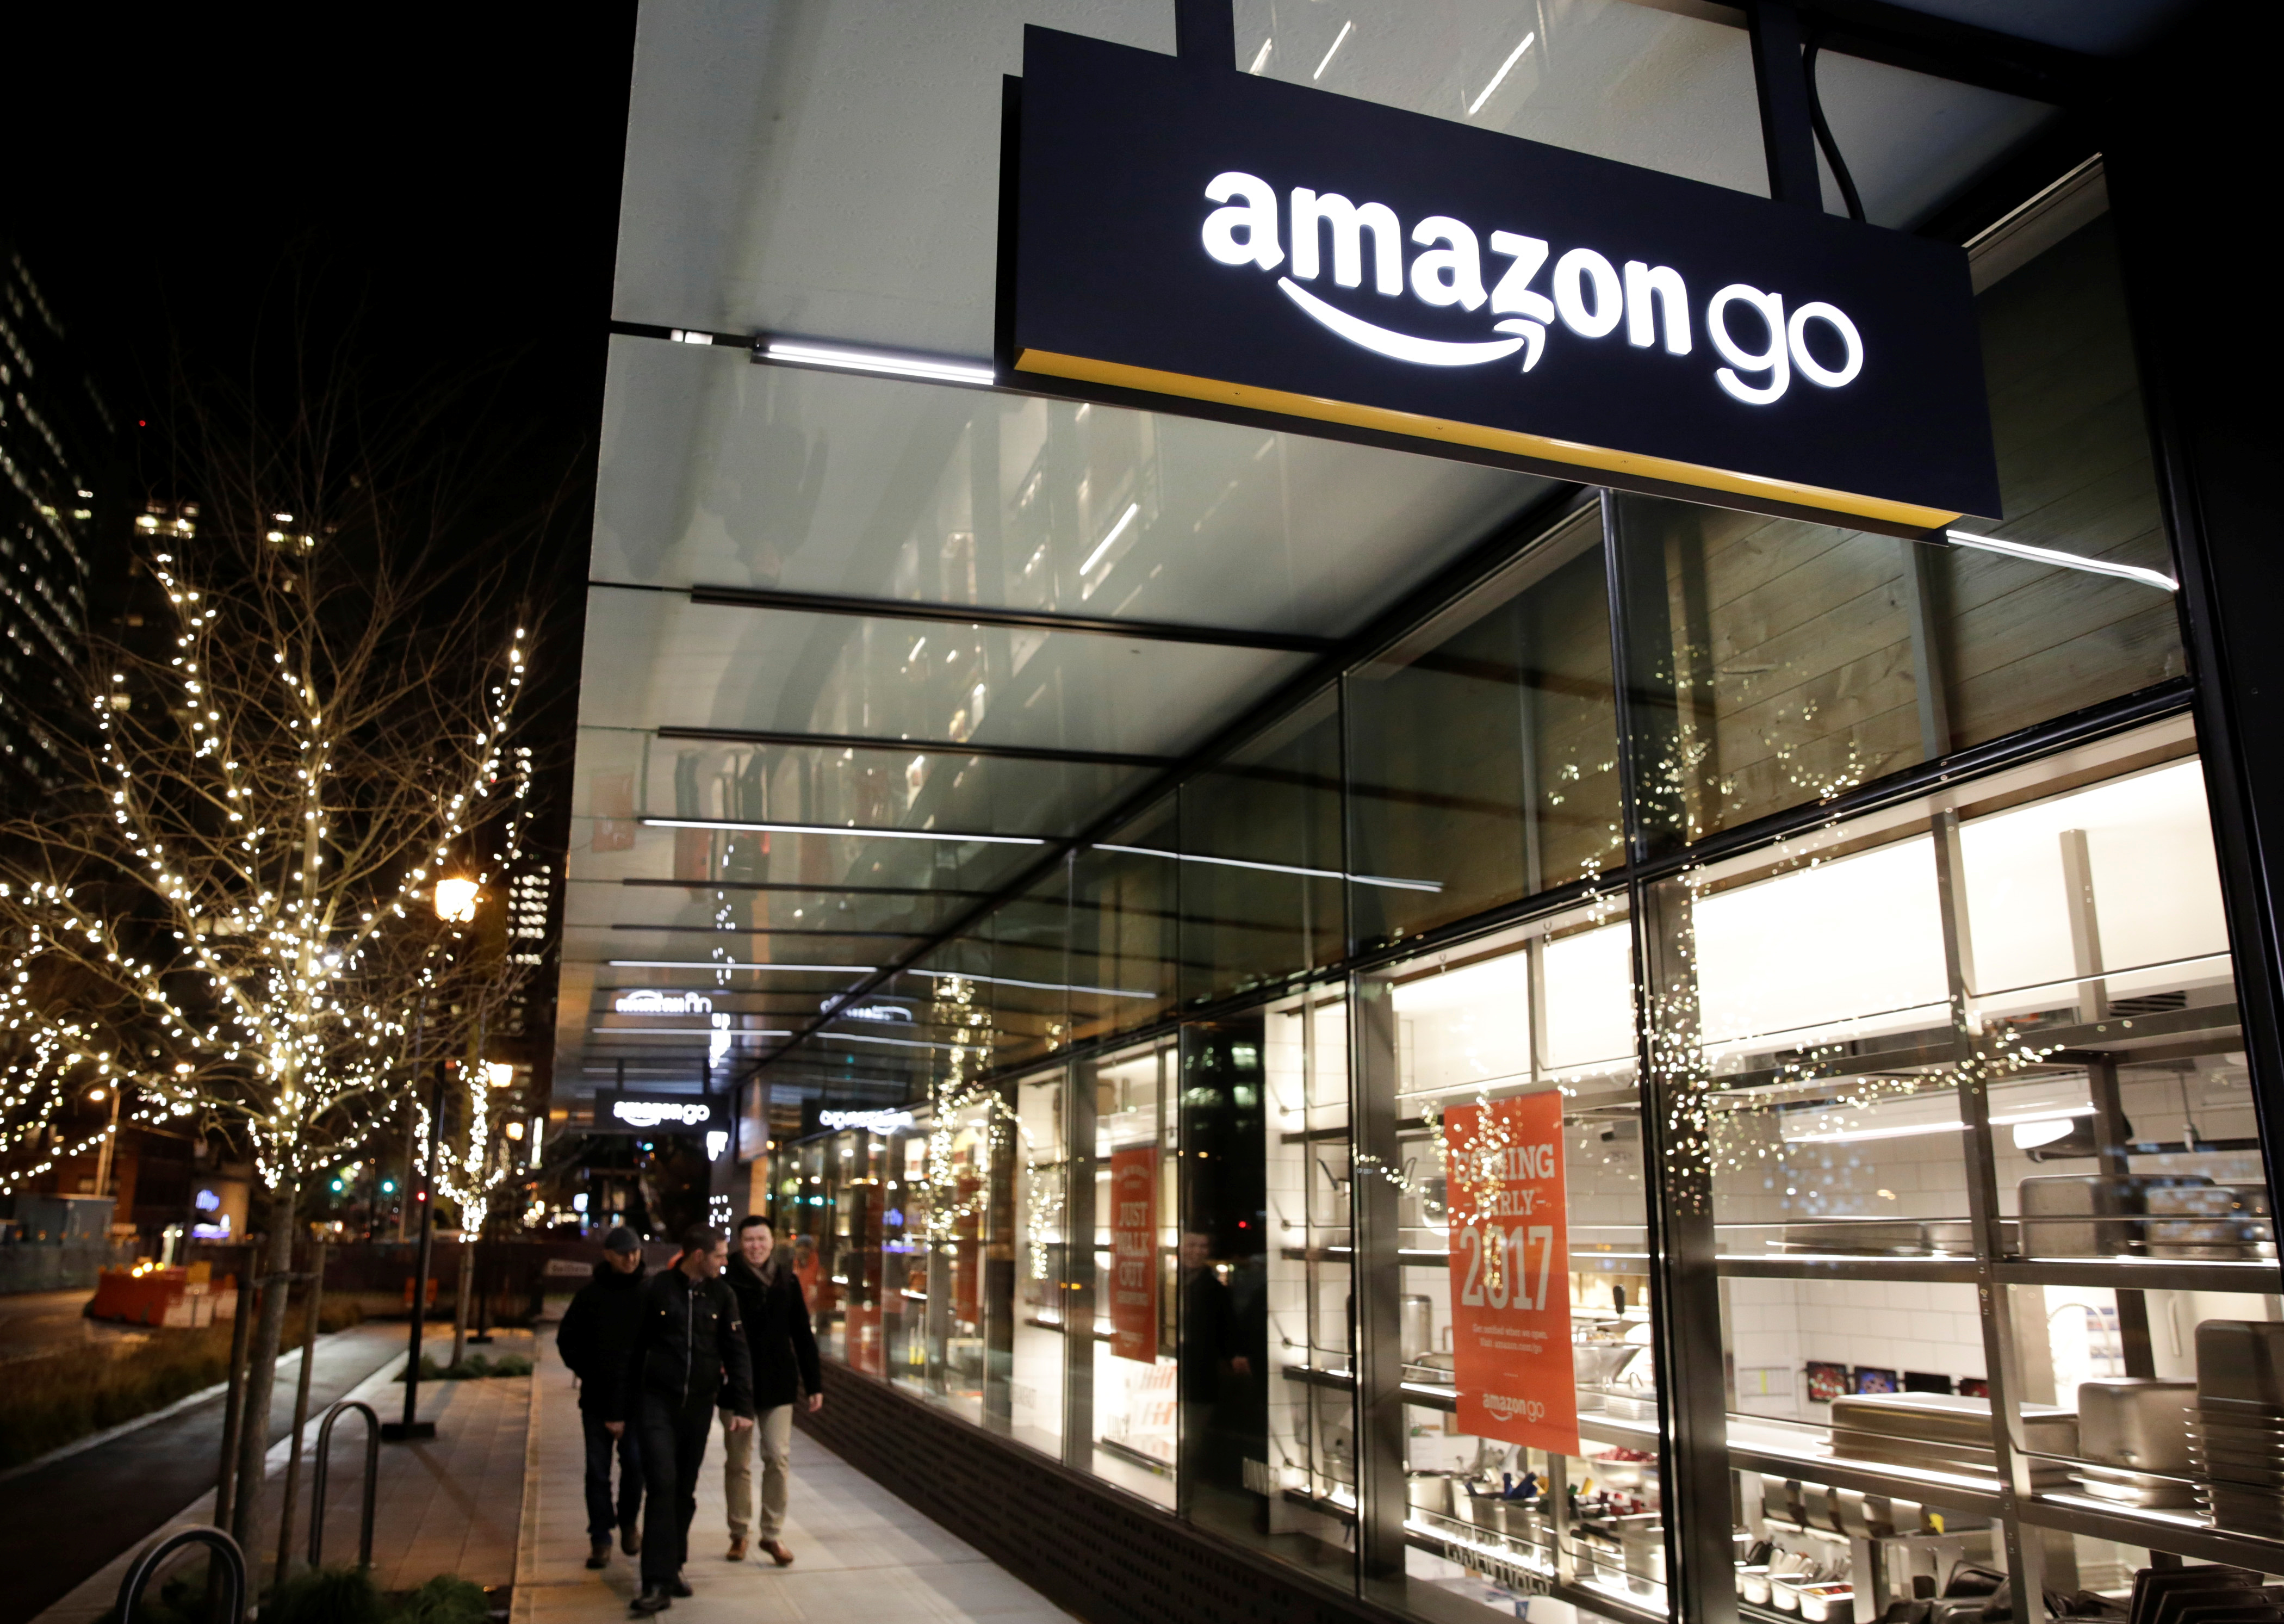 Amazon Go Is Proof That Business Partnerships Rarely Work Fortune